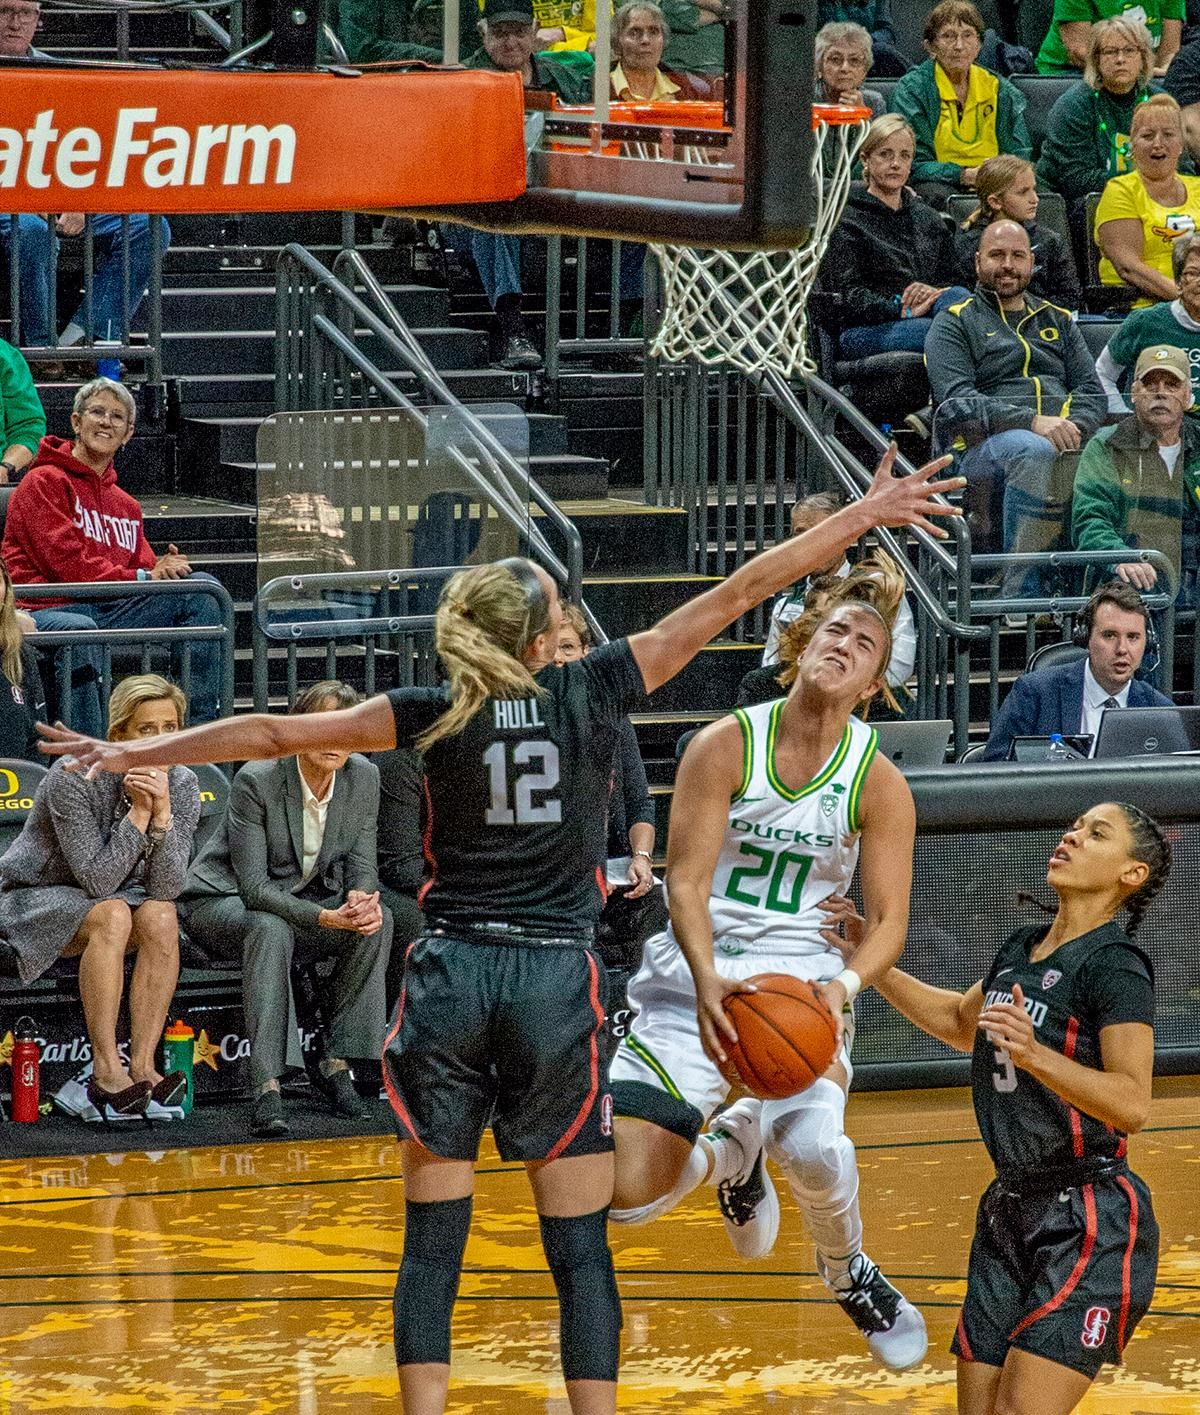 Oregon's point guard Sabrina Ionescu, #20, goes up and under over Stanford's forward Lexie Hull, #12, for a reverse layup. The #6 University of Oregon Ducks women's basketball team defeated #3 Stanford Cardinal 87-55 in front of a sold out crowd of 12, 218 fans in Matthew Knight Arena. Sabrina Ionescu broke the all-time Oregon scoring record of 2,253 and ended the game with 37 points, 11 rebounds, another double-double. Satou Sabally added 18 points and 11 rebounds, also a double-double. Ruthy Hebard put up 11 points with 5 rebounds, and Minyon Moore added 10 points 3 rebounds. The Ducks next face off against Cal on Sunday, January 19, at 2 pm in Matthew Knight Arena. Photo by Jeffrey Price